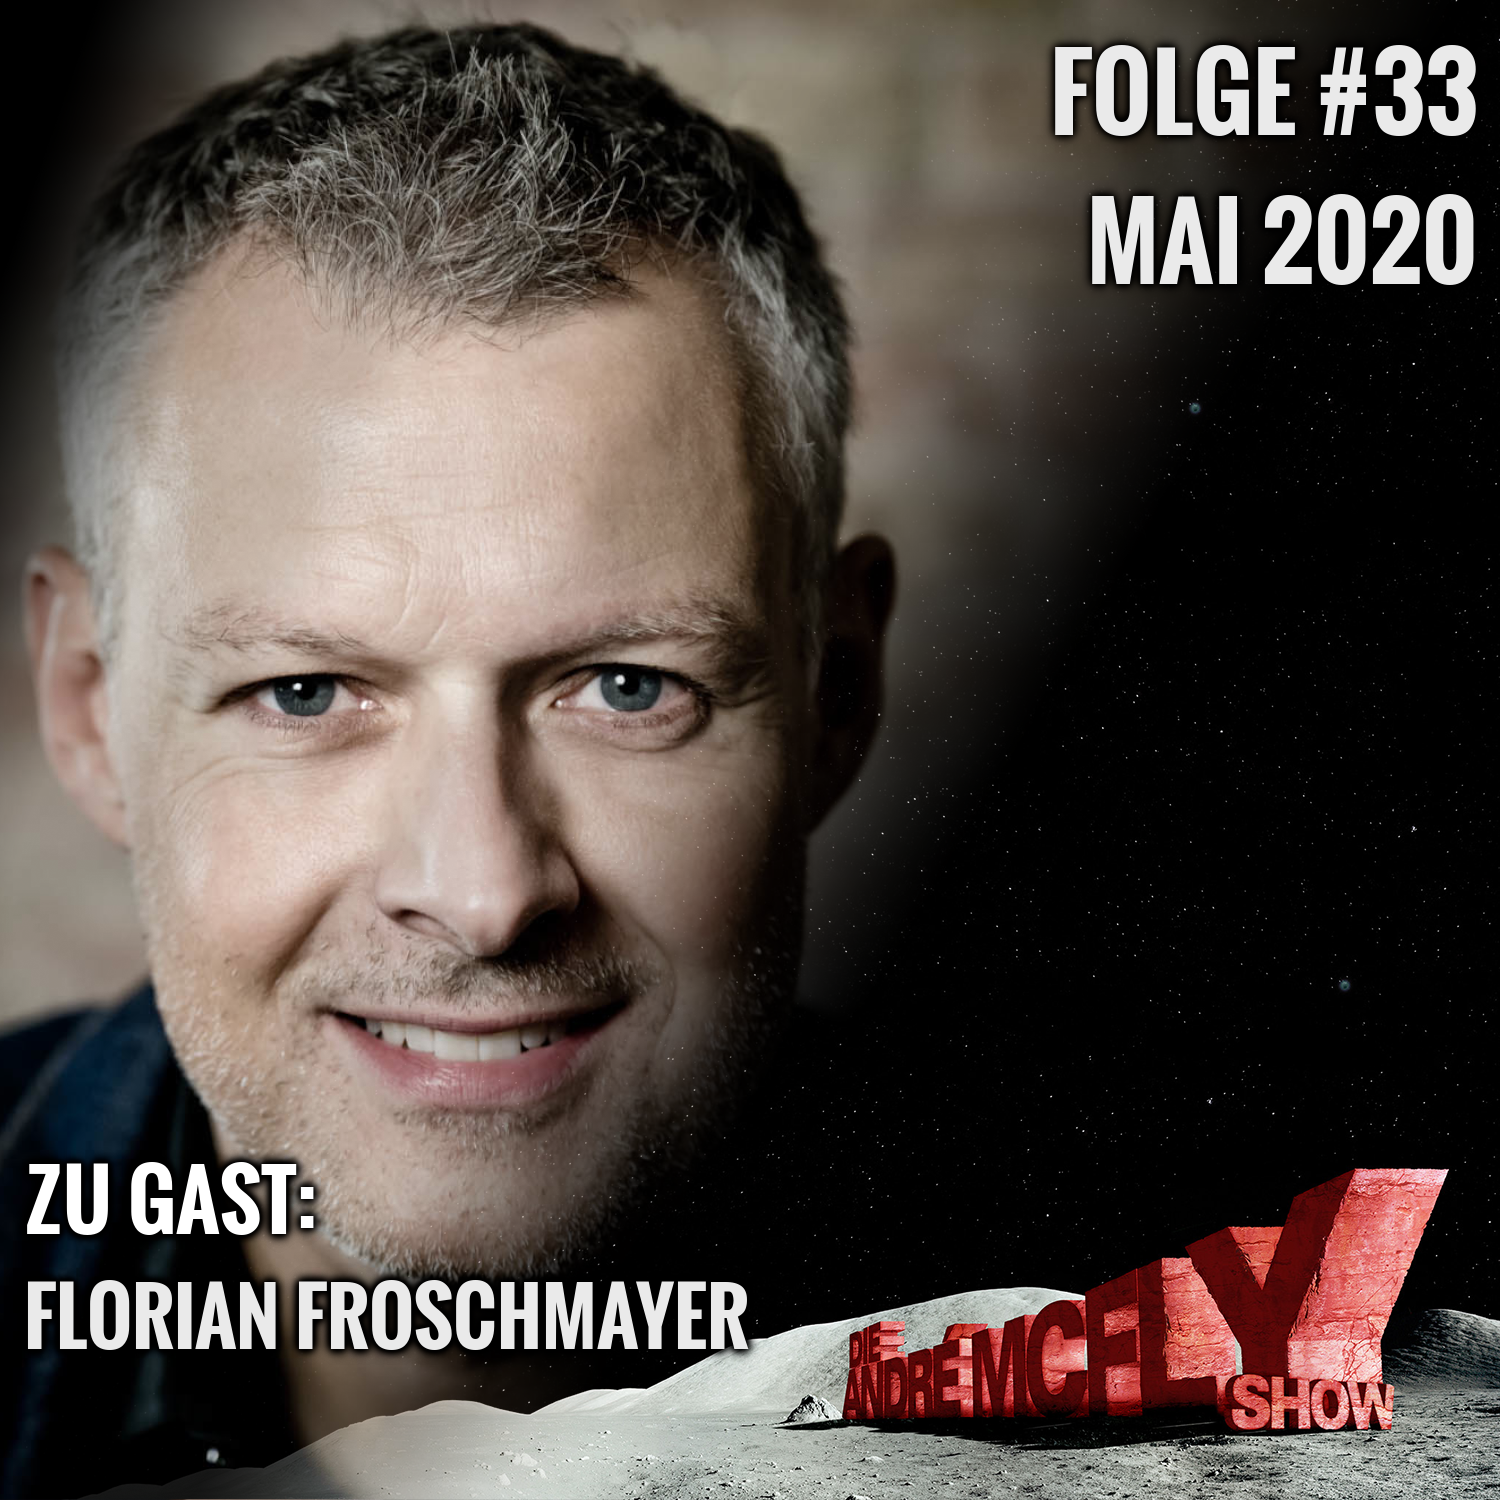 Die André McFly Show #33 | Gast: Florian Froschmayer